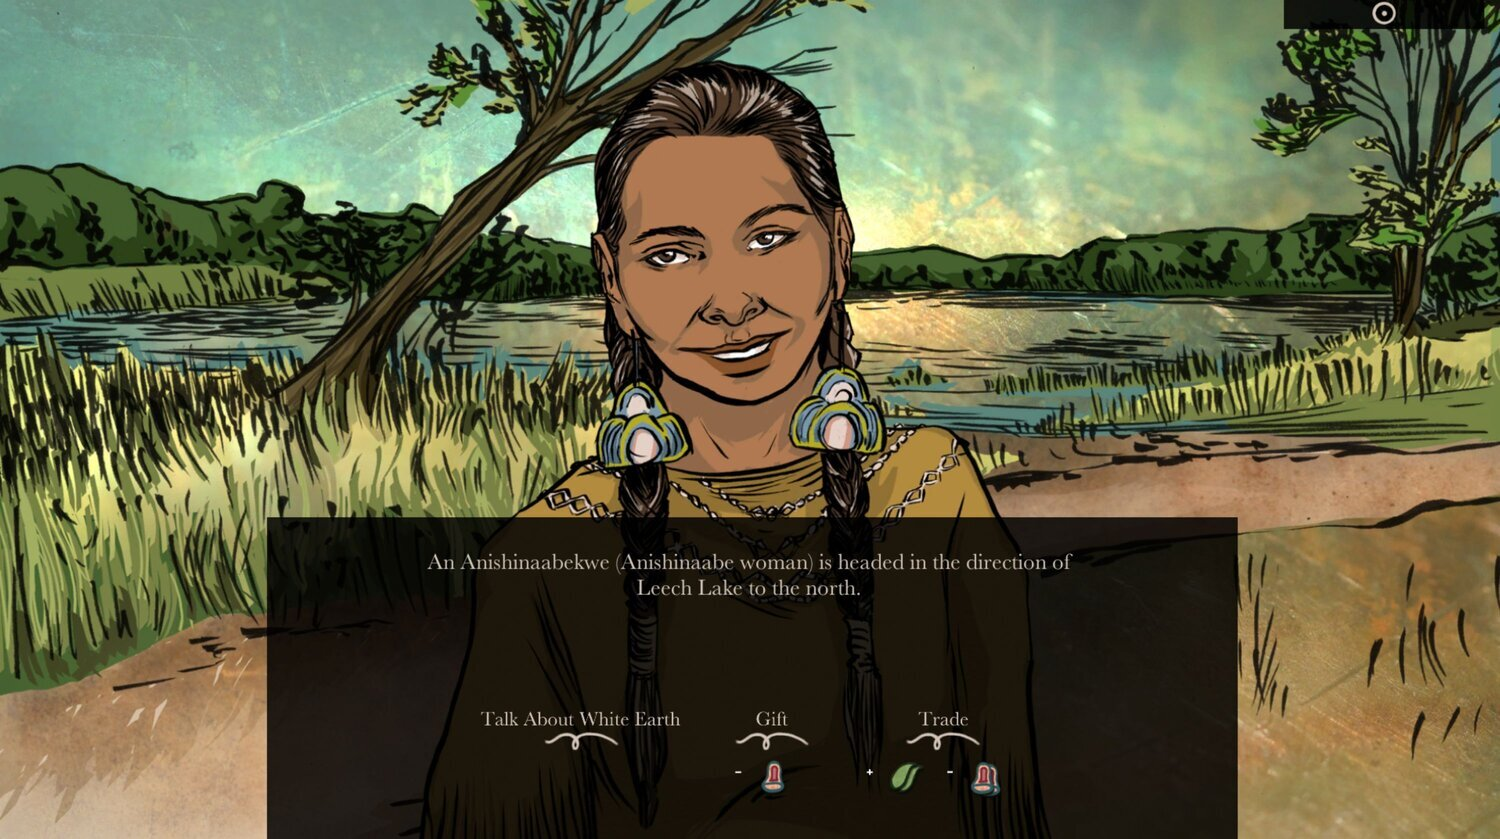 When Rivers Were Trails - https://indianlandtenure.itch.io/when-rivers-were-trailsIndian Land Tenure Foundation & Games for Entertainment and Learning LabMake the journey west helping resistances and facing Indian Agents as an Anishinaabe who has been displaced from their territory in 1890.